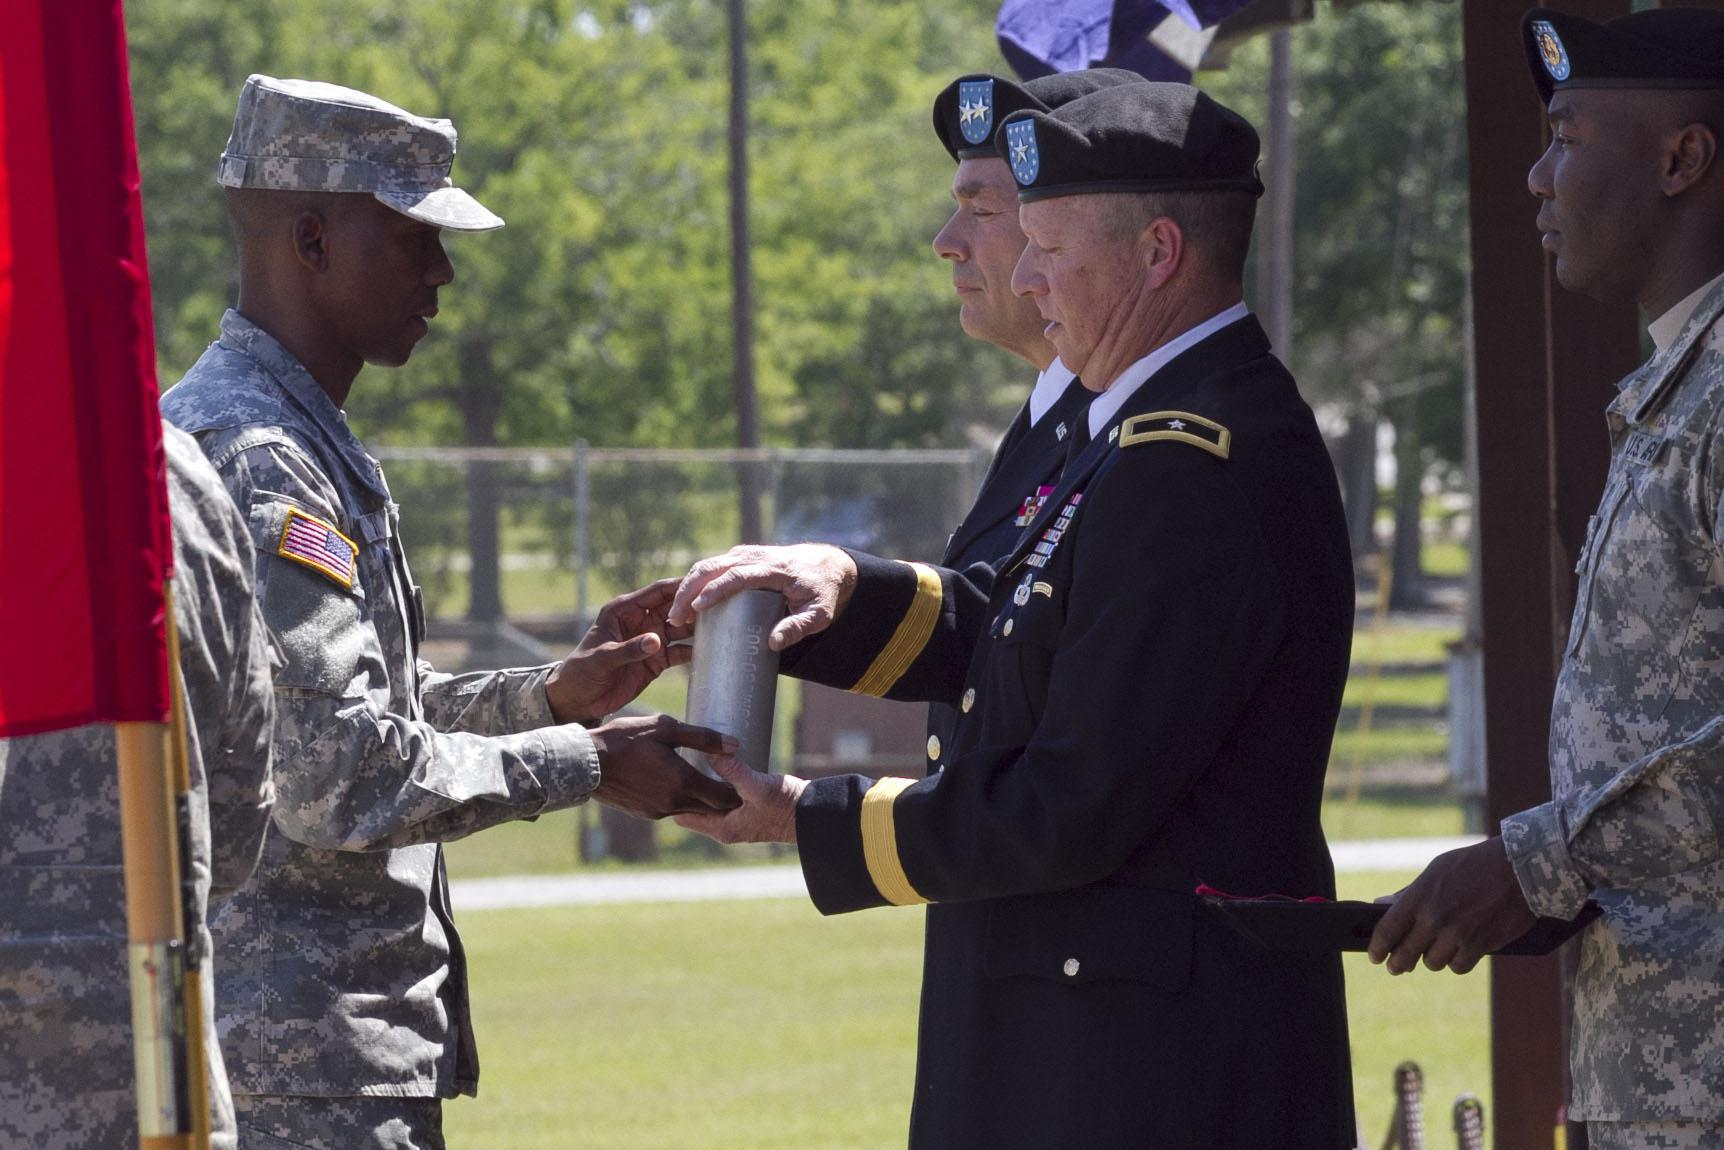 <p>Gen. William J. Gothard (right) receives a spent shell casing as part of his 2014 retirement ceremony at Fort Jackson, S.C. Gothard says his 36 years of service left him with hearing loss and tinnitus.</p>